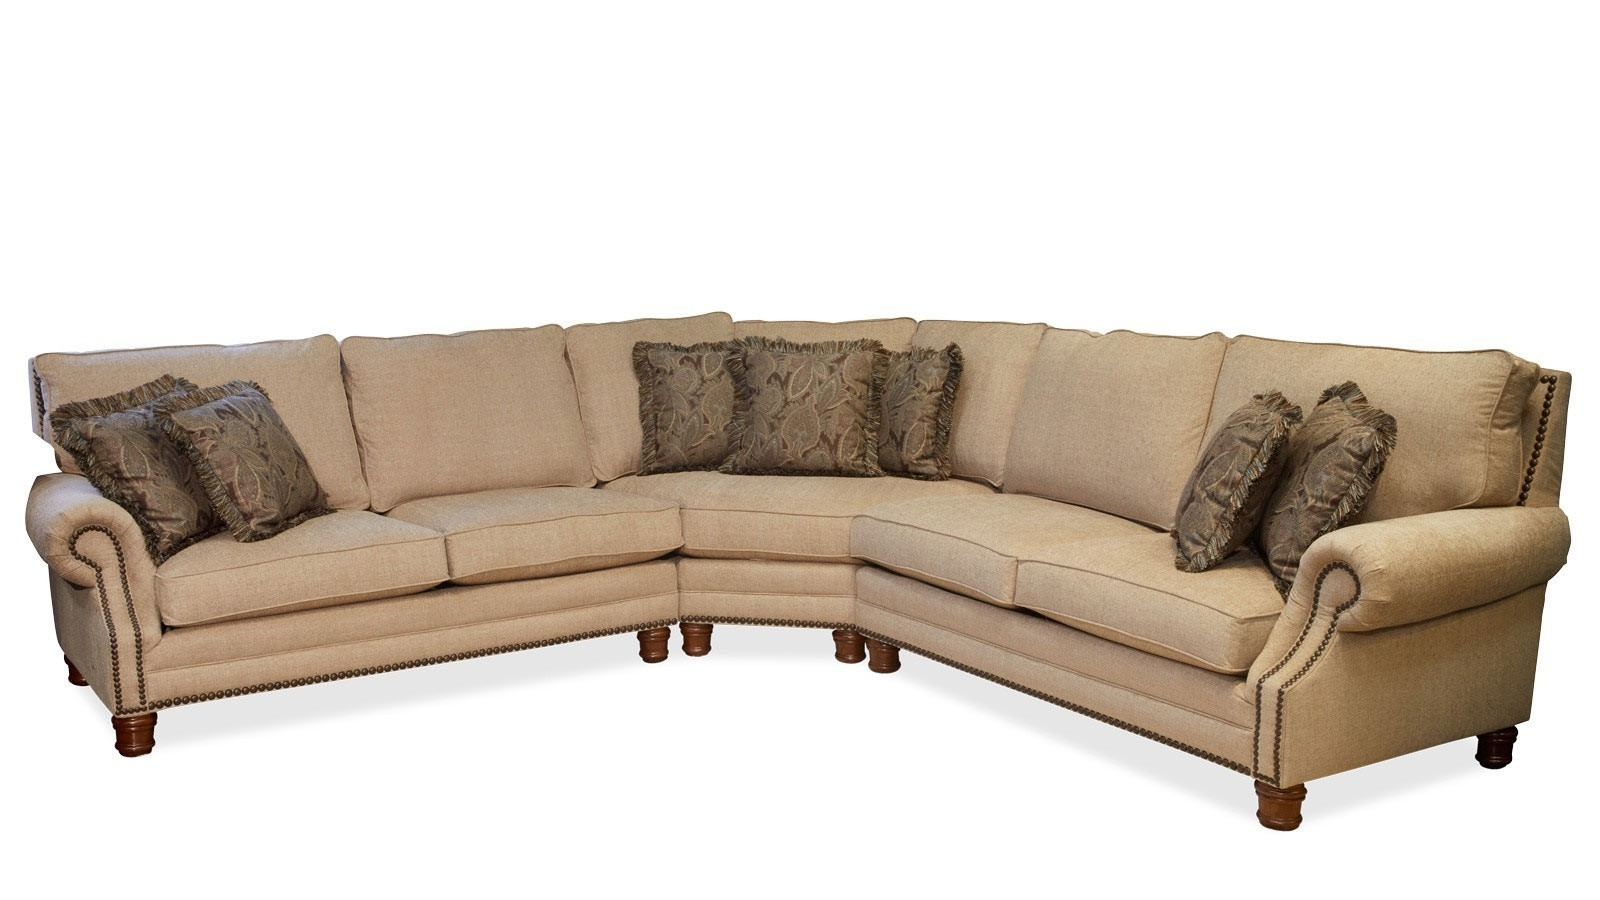 Gallery Furniture Regarding 2019 Gallery Furniture Sectional Sofas (View 10 of 20)